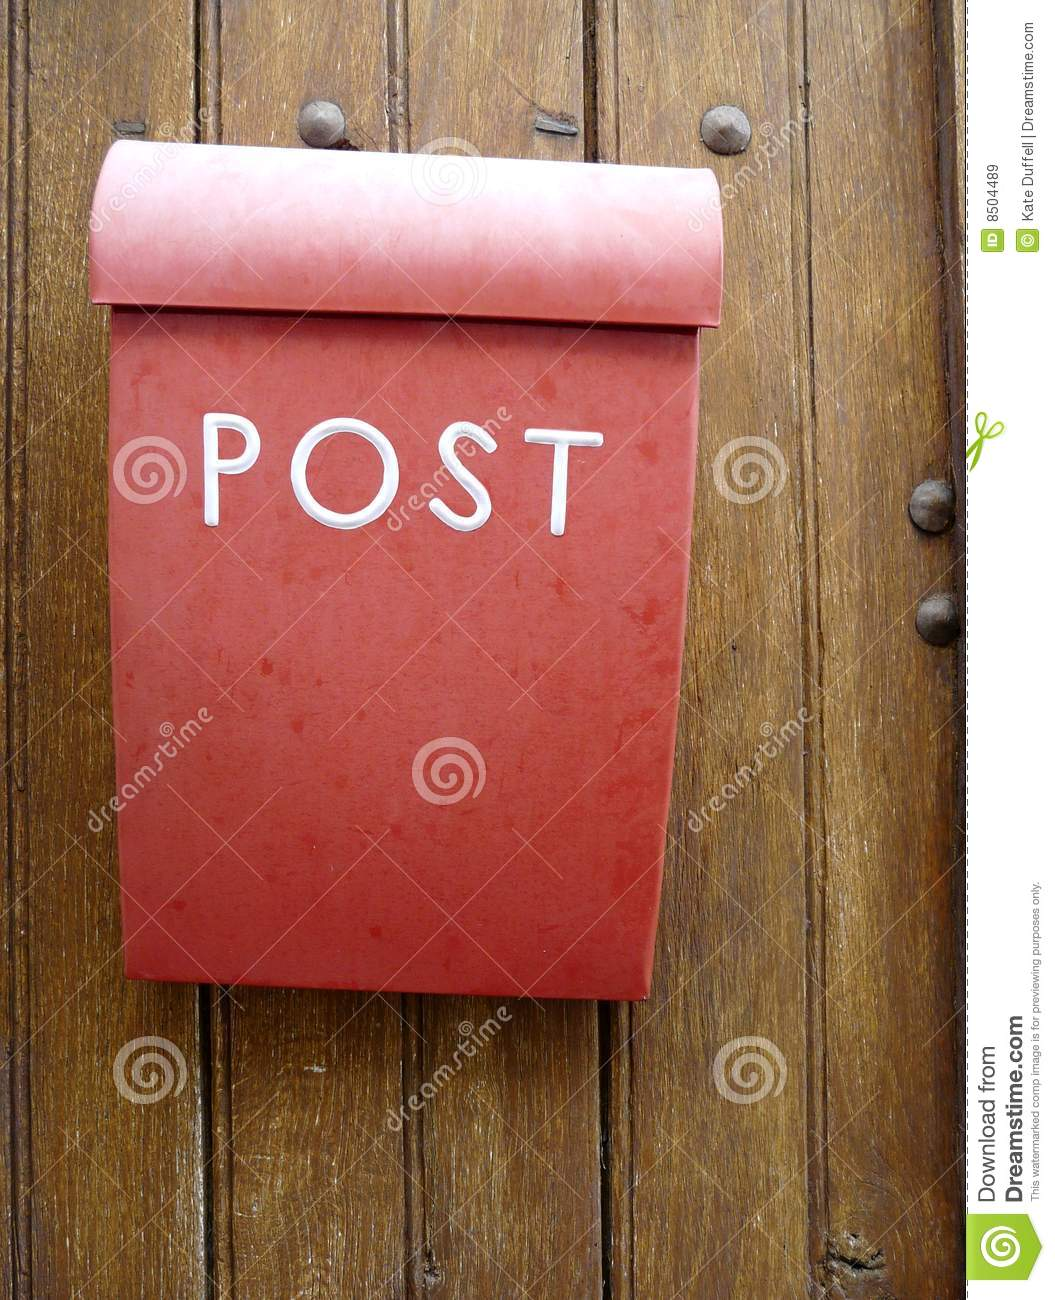 Superieur Download Red Mailbox On A Wooden Door Stock Image   Image Of Open, Metal: